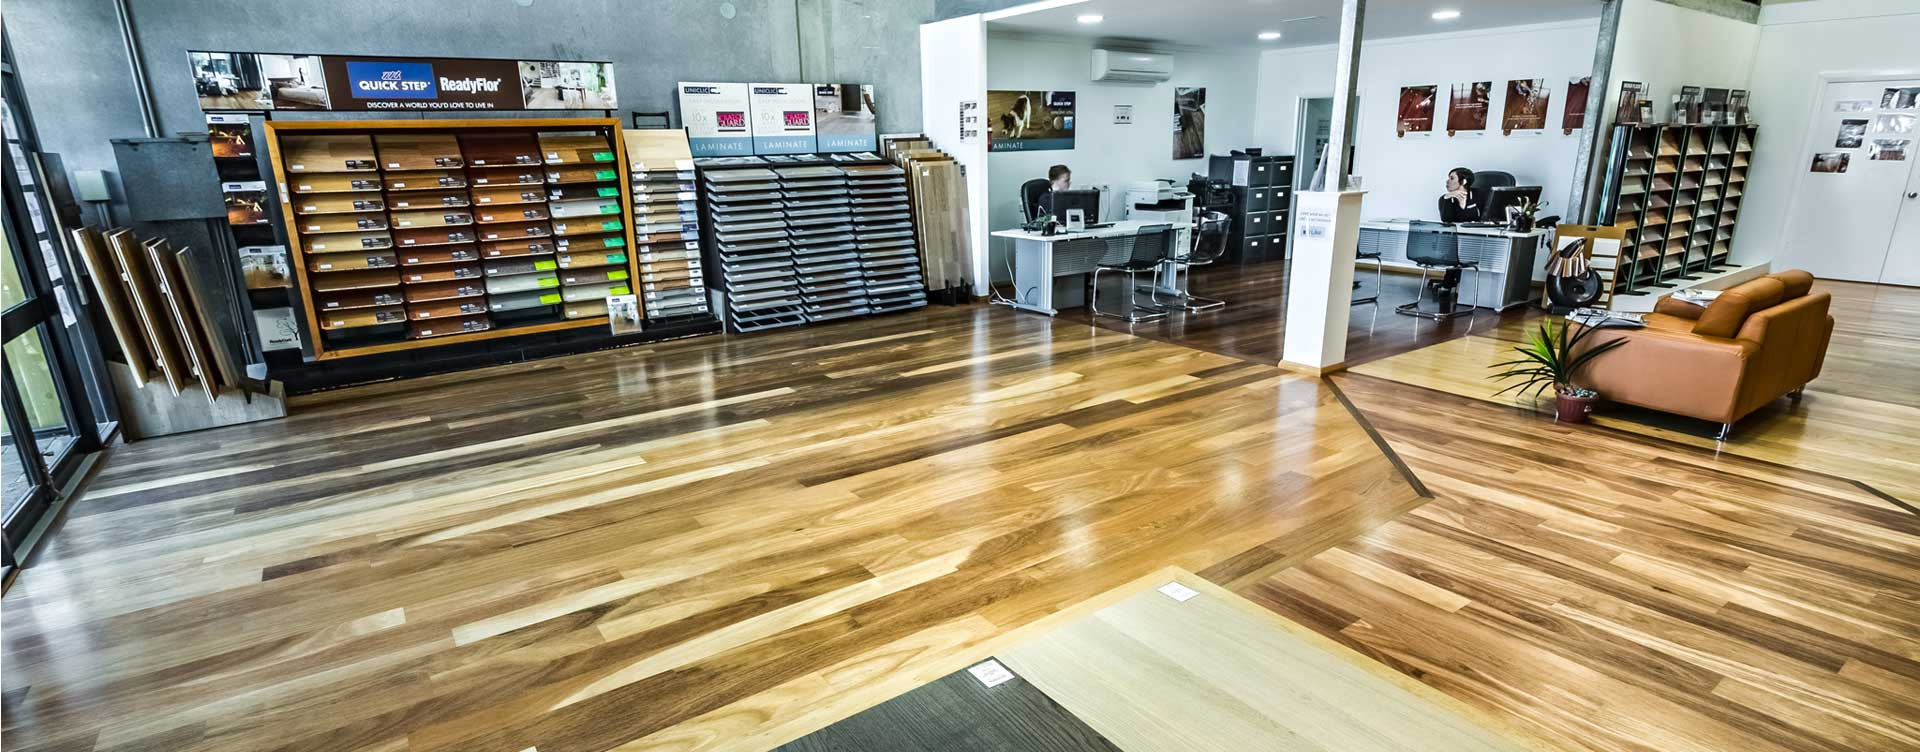 Hardwood Floor Repair Products Of Timber Flooring Perth Coastal Flooring Wa Quality Wooden Intended for thats why they Call Us the Home Of Fine Wood Floors